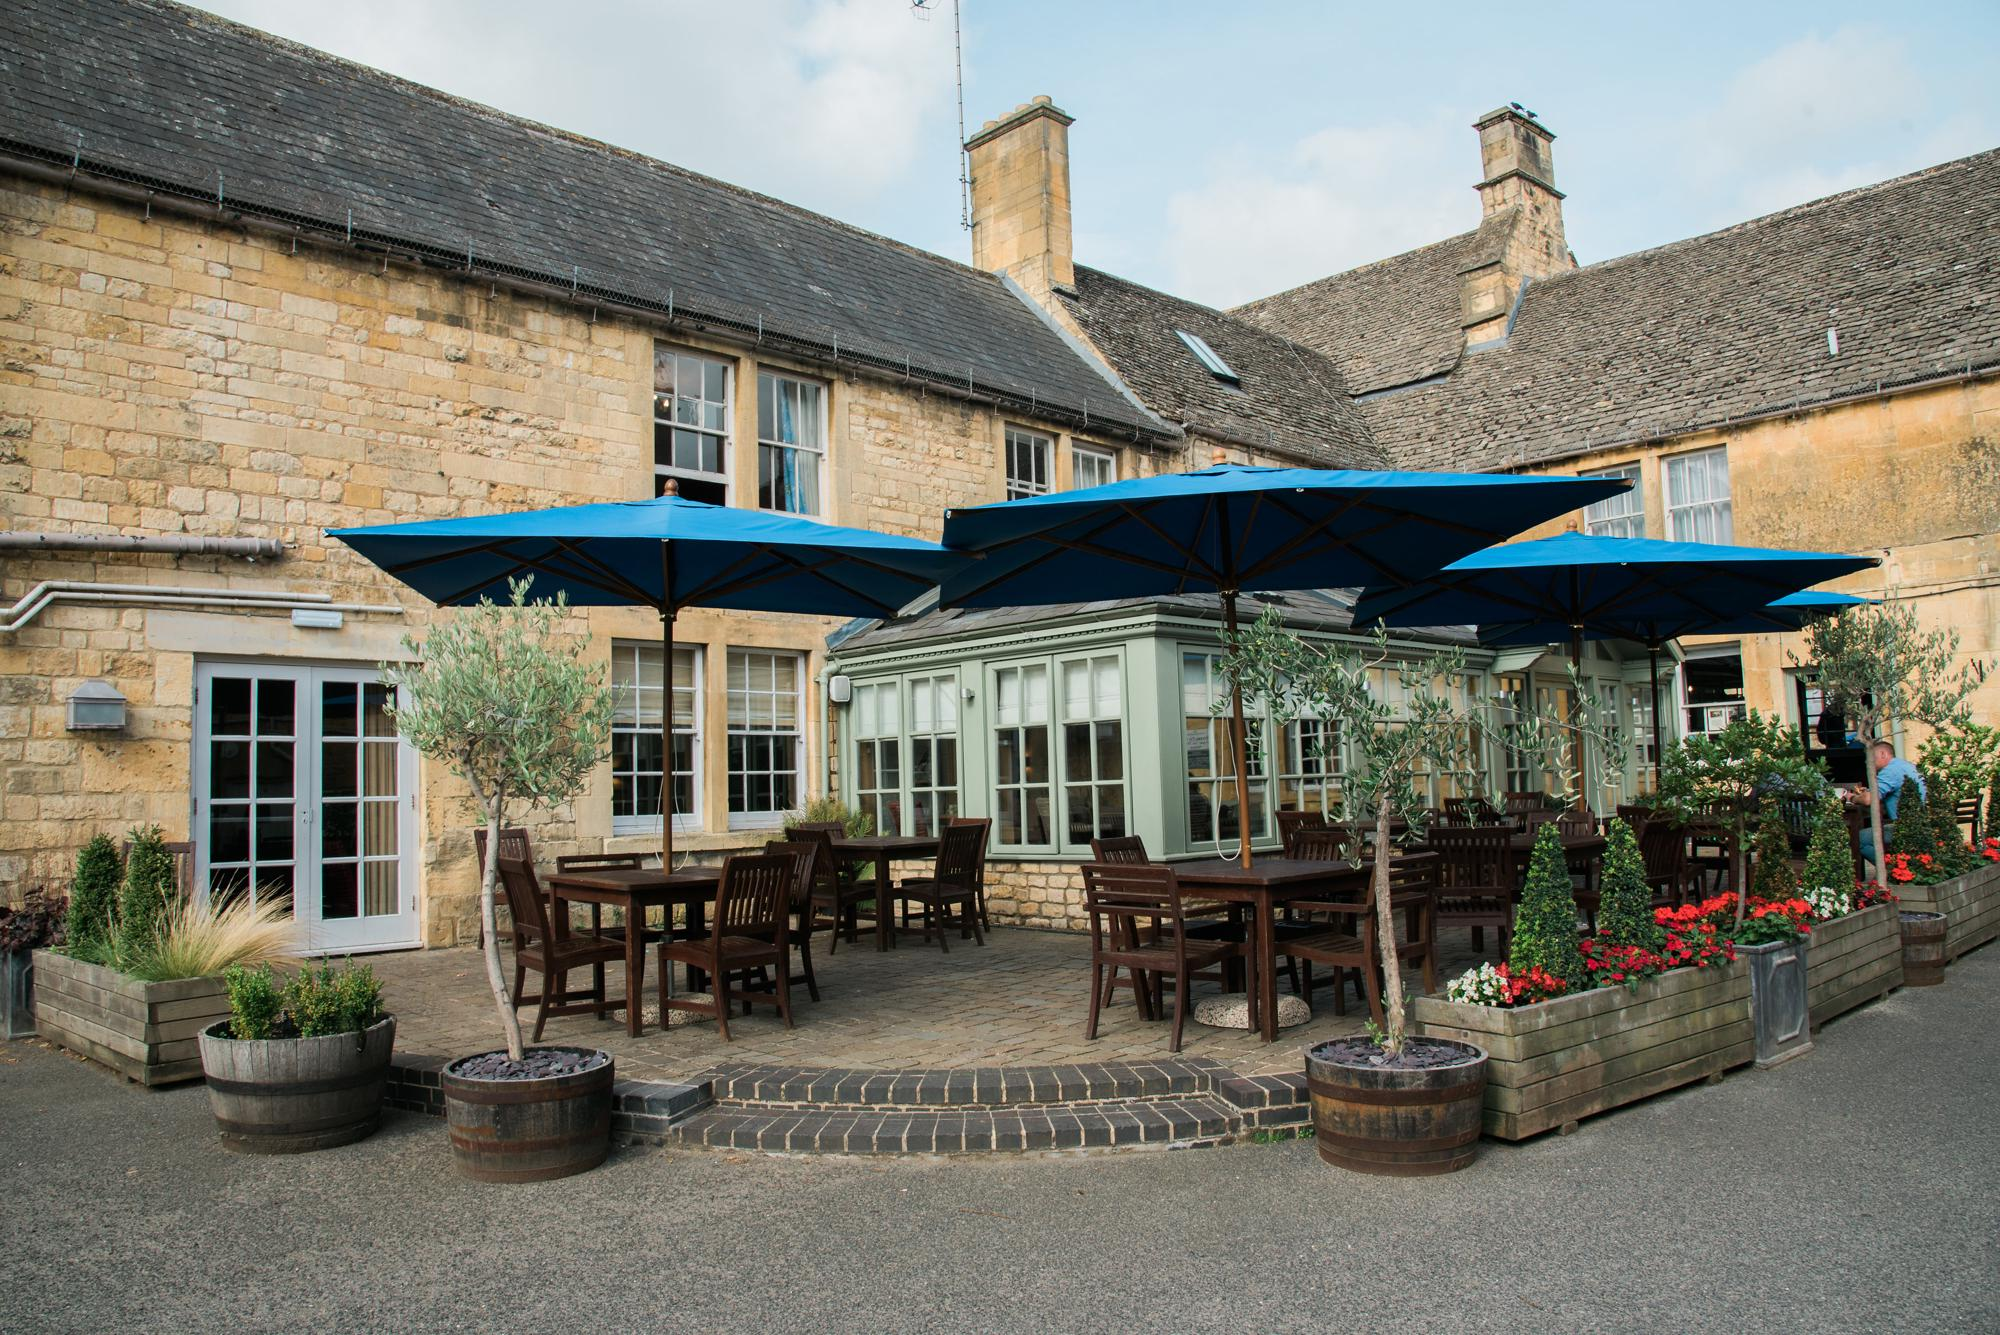 Hotels in Chipping Campden holidays at Cool Places